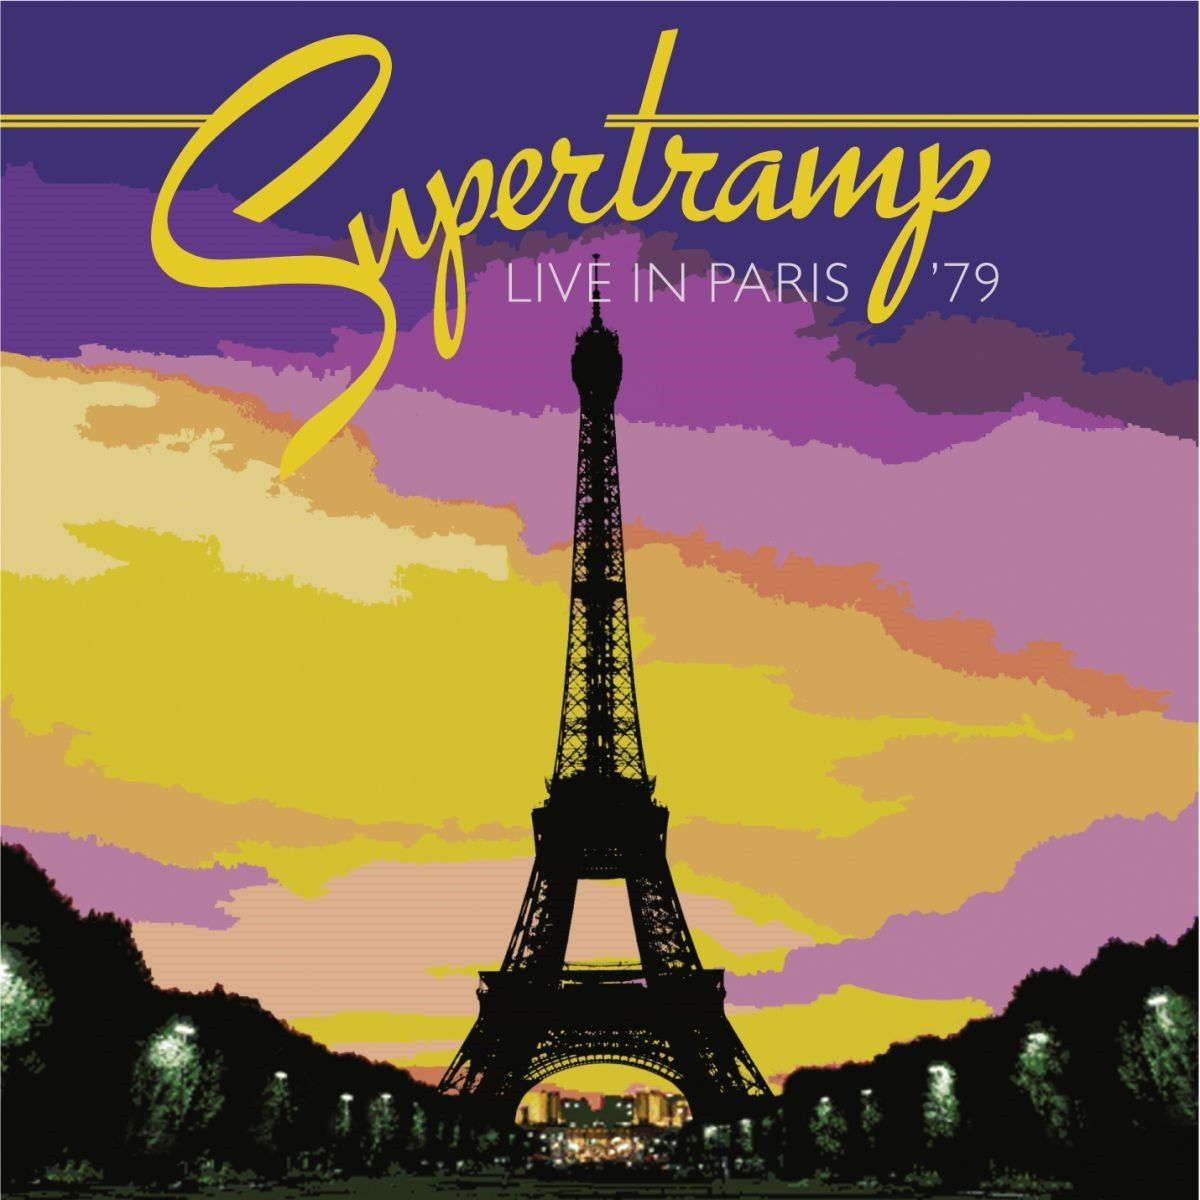 Supertramp Live In Paris 79 2 Cd Dvd Dubman Home